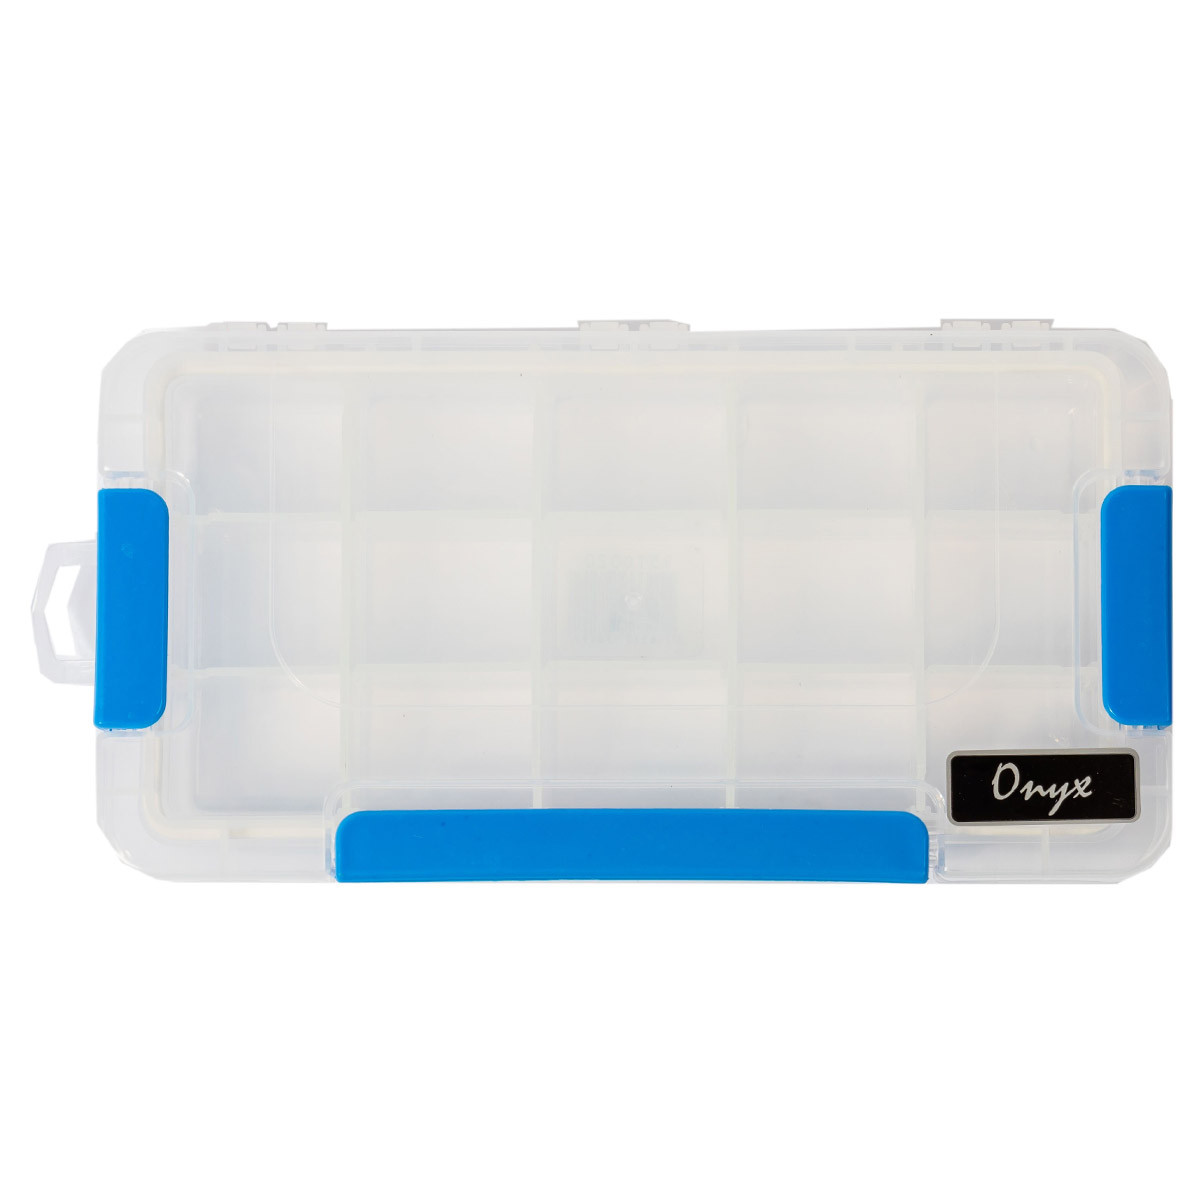 Lion Onyx Tackle Box S